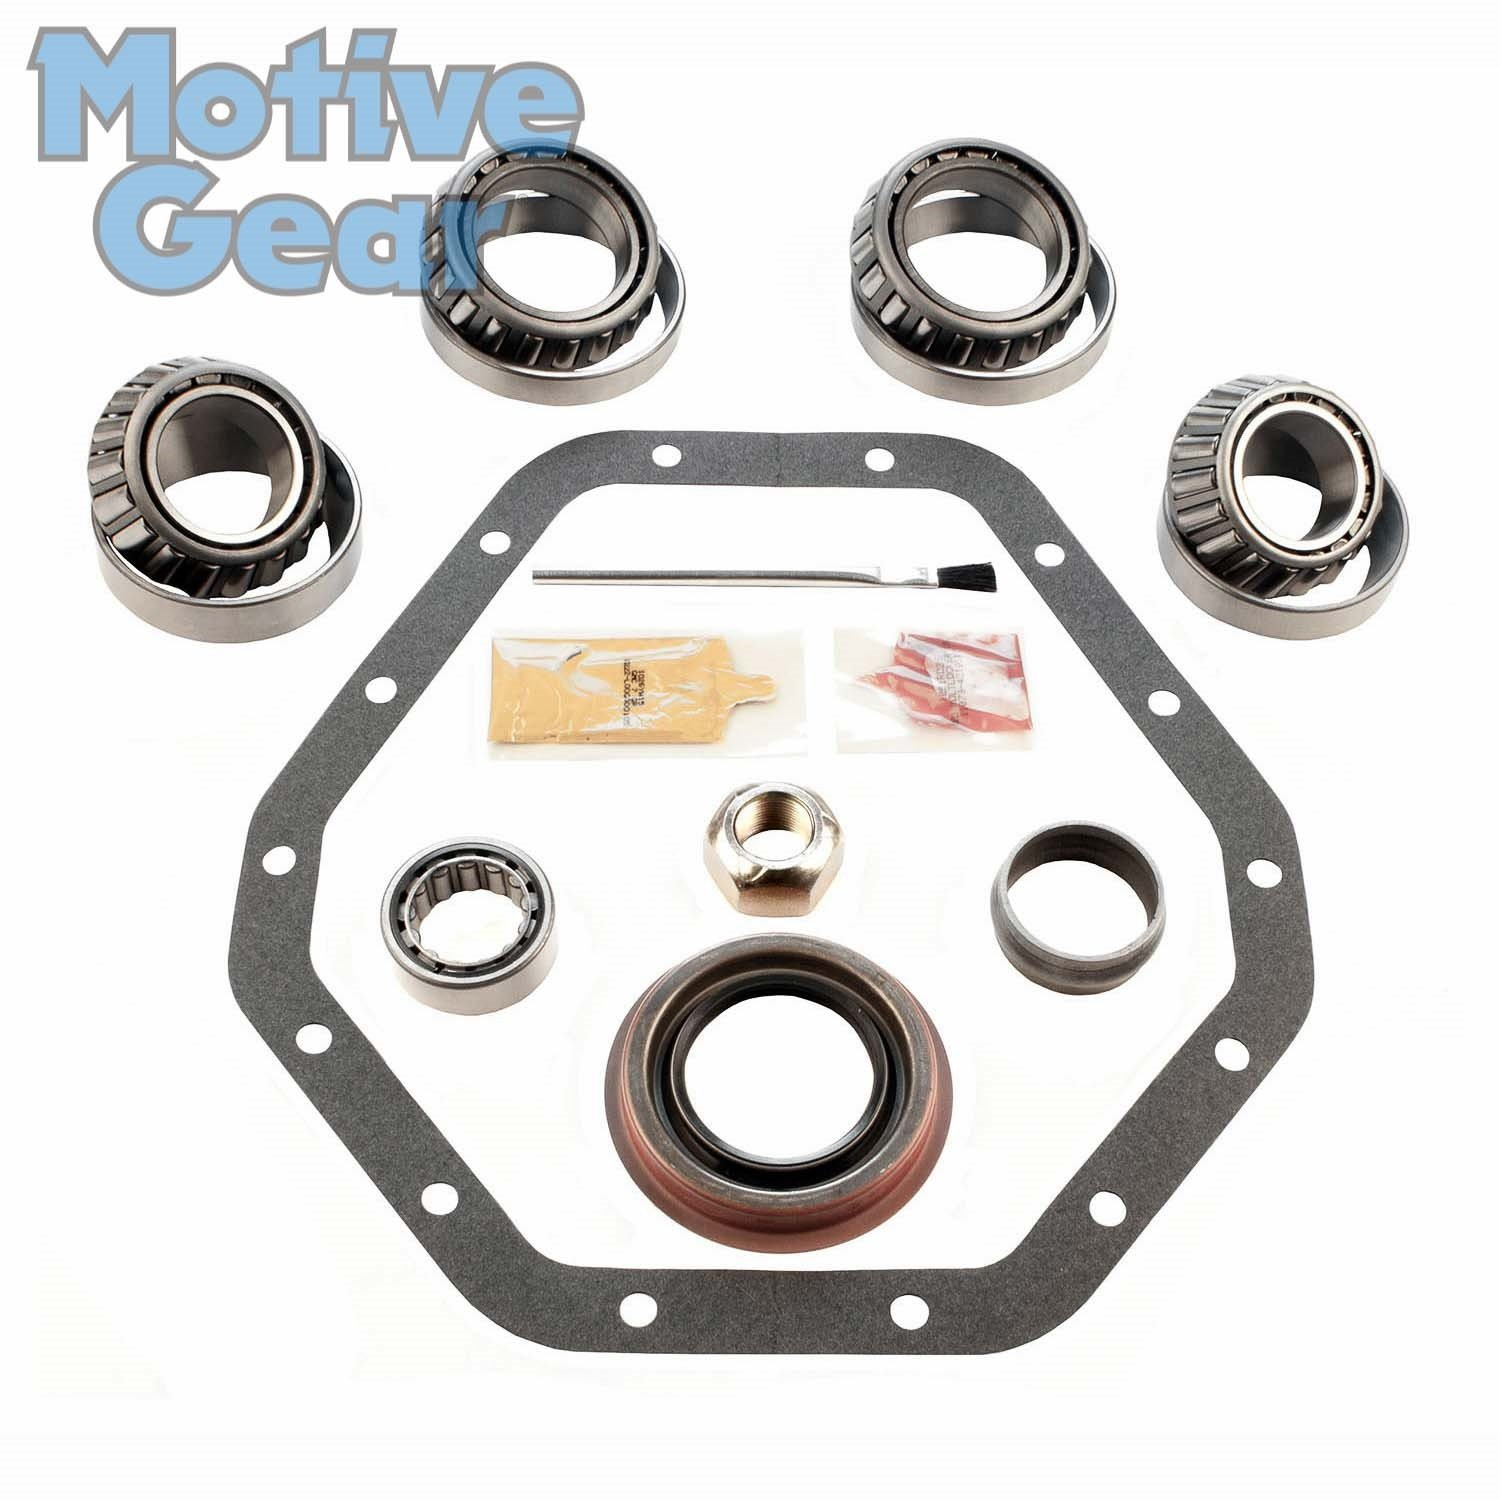 Motive Gear R14R Bearing Kit with Koyo Bearings (GM 10.5' '72-'88)